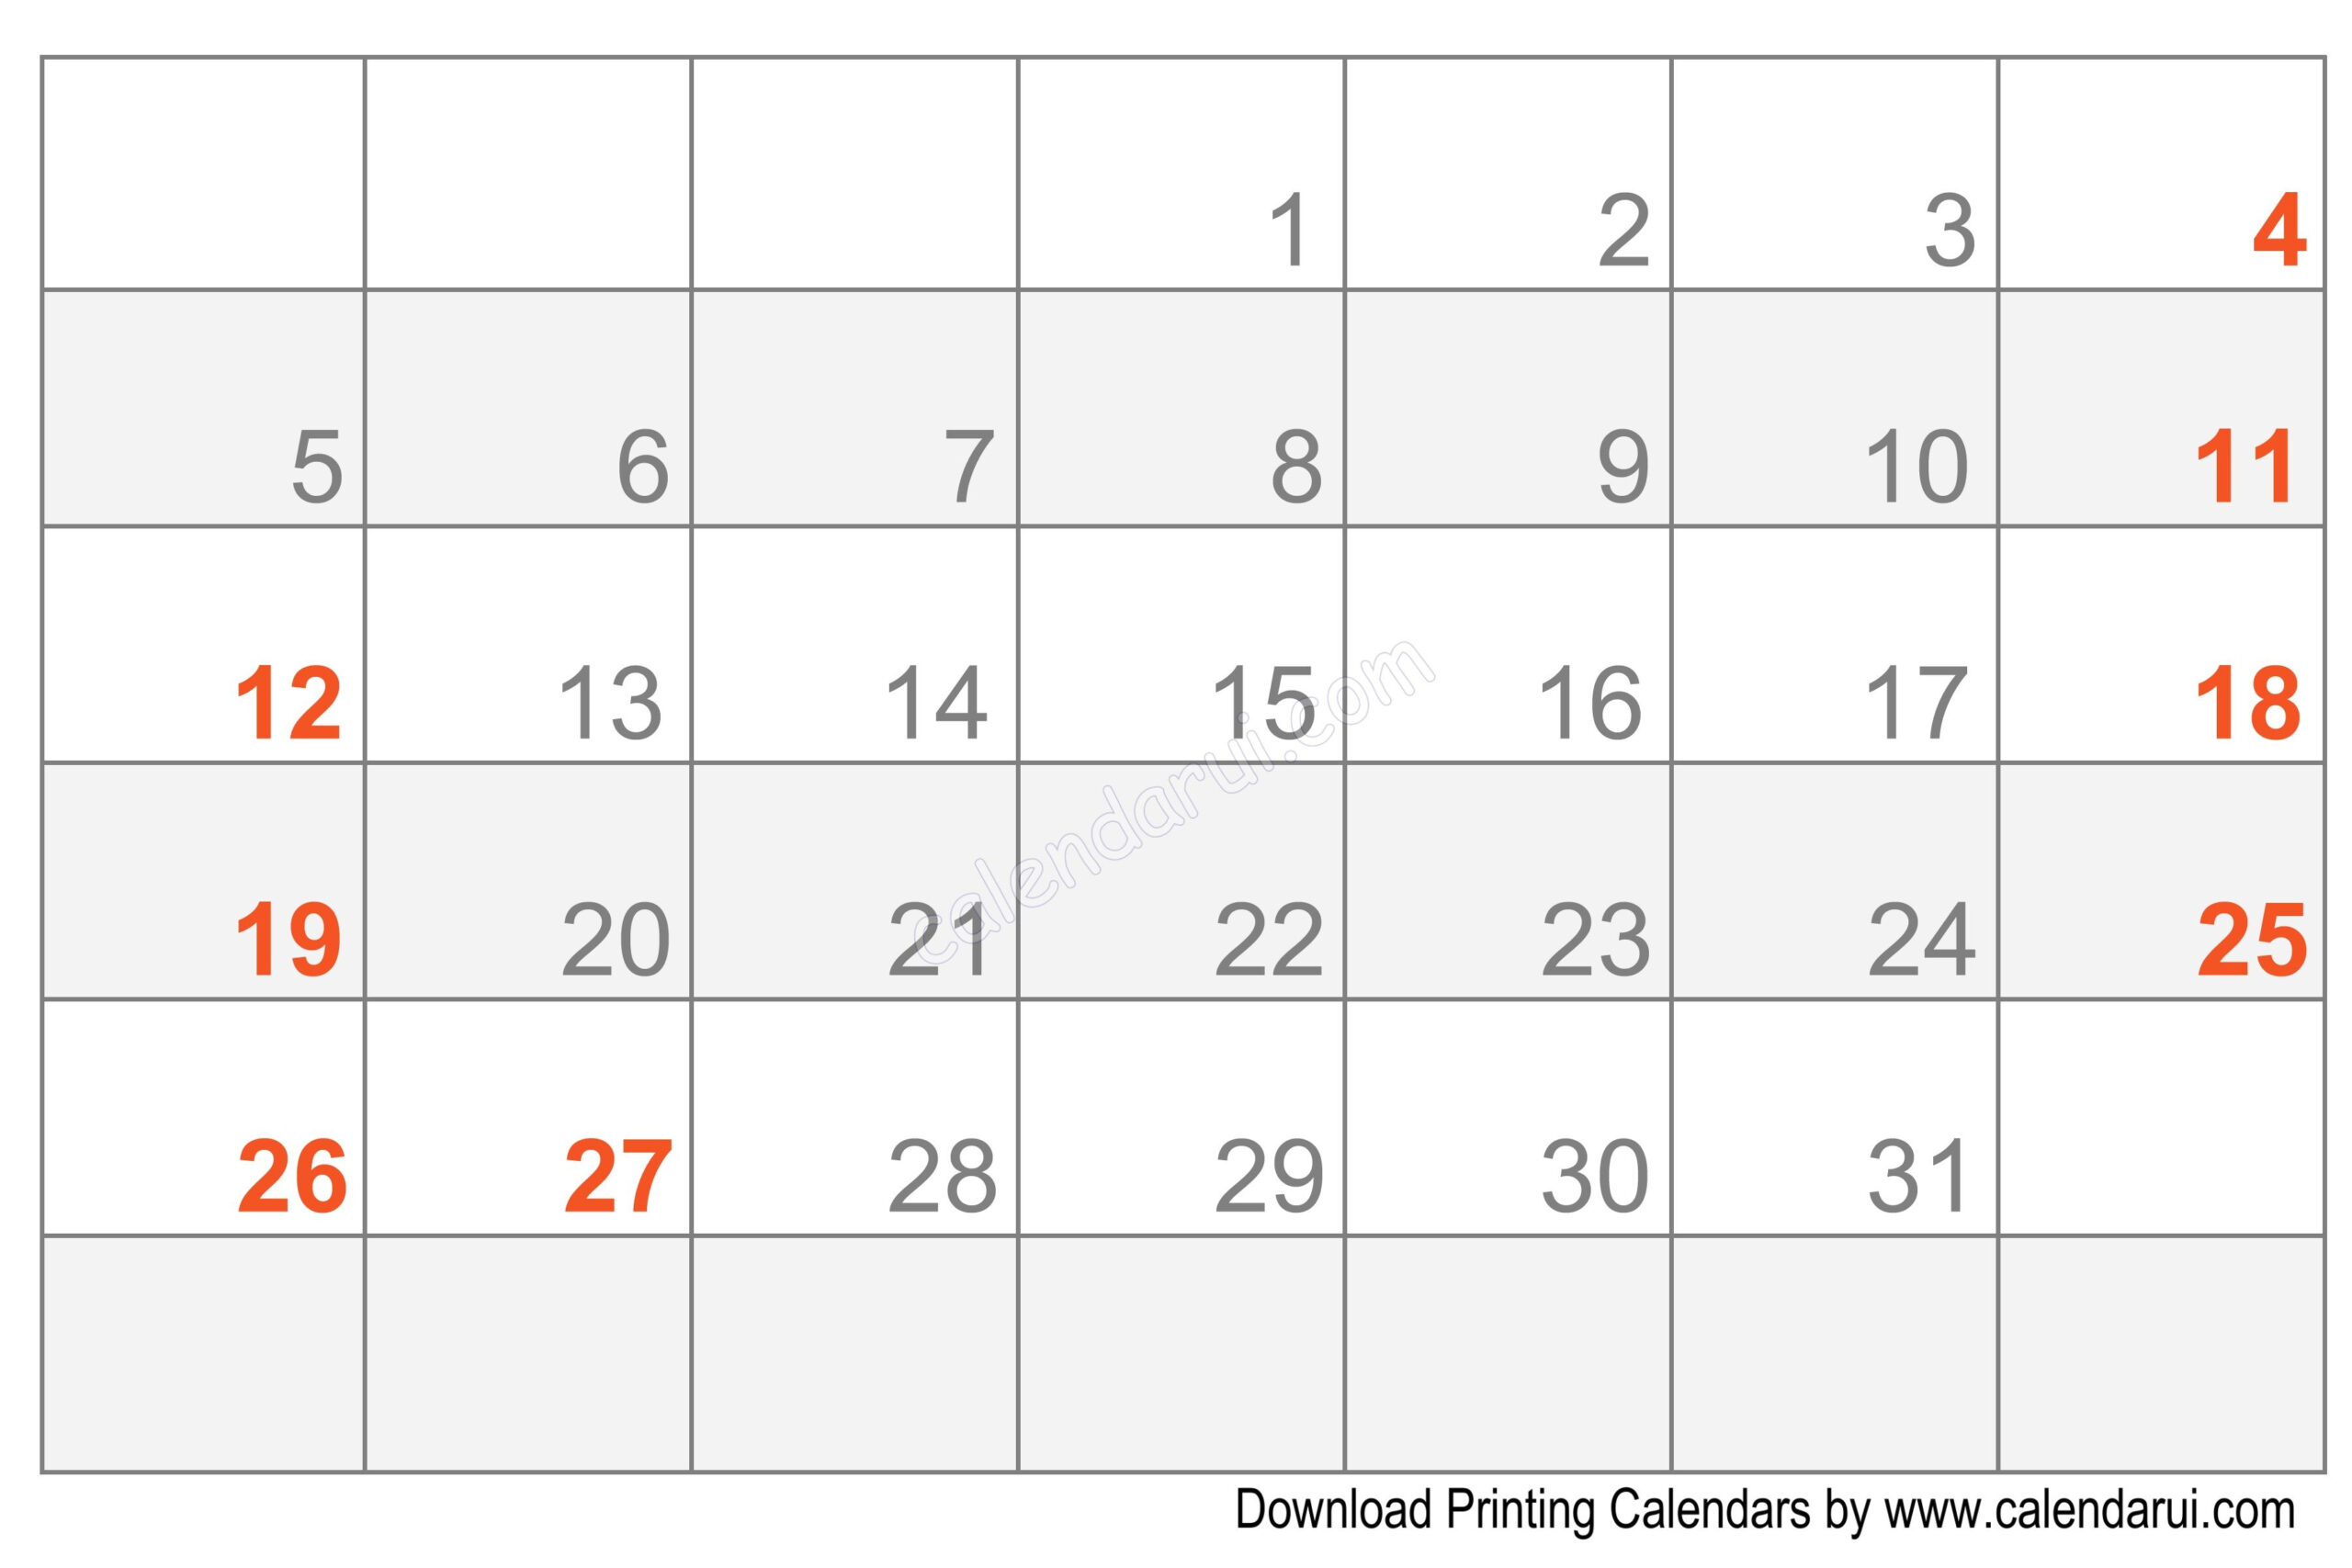 Printable Blank Calendar Template Free | Calendar Template with Calendar To Fill In